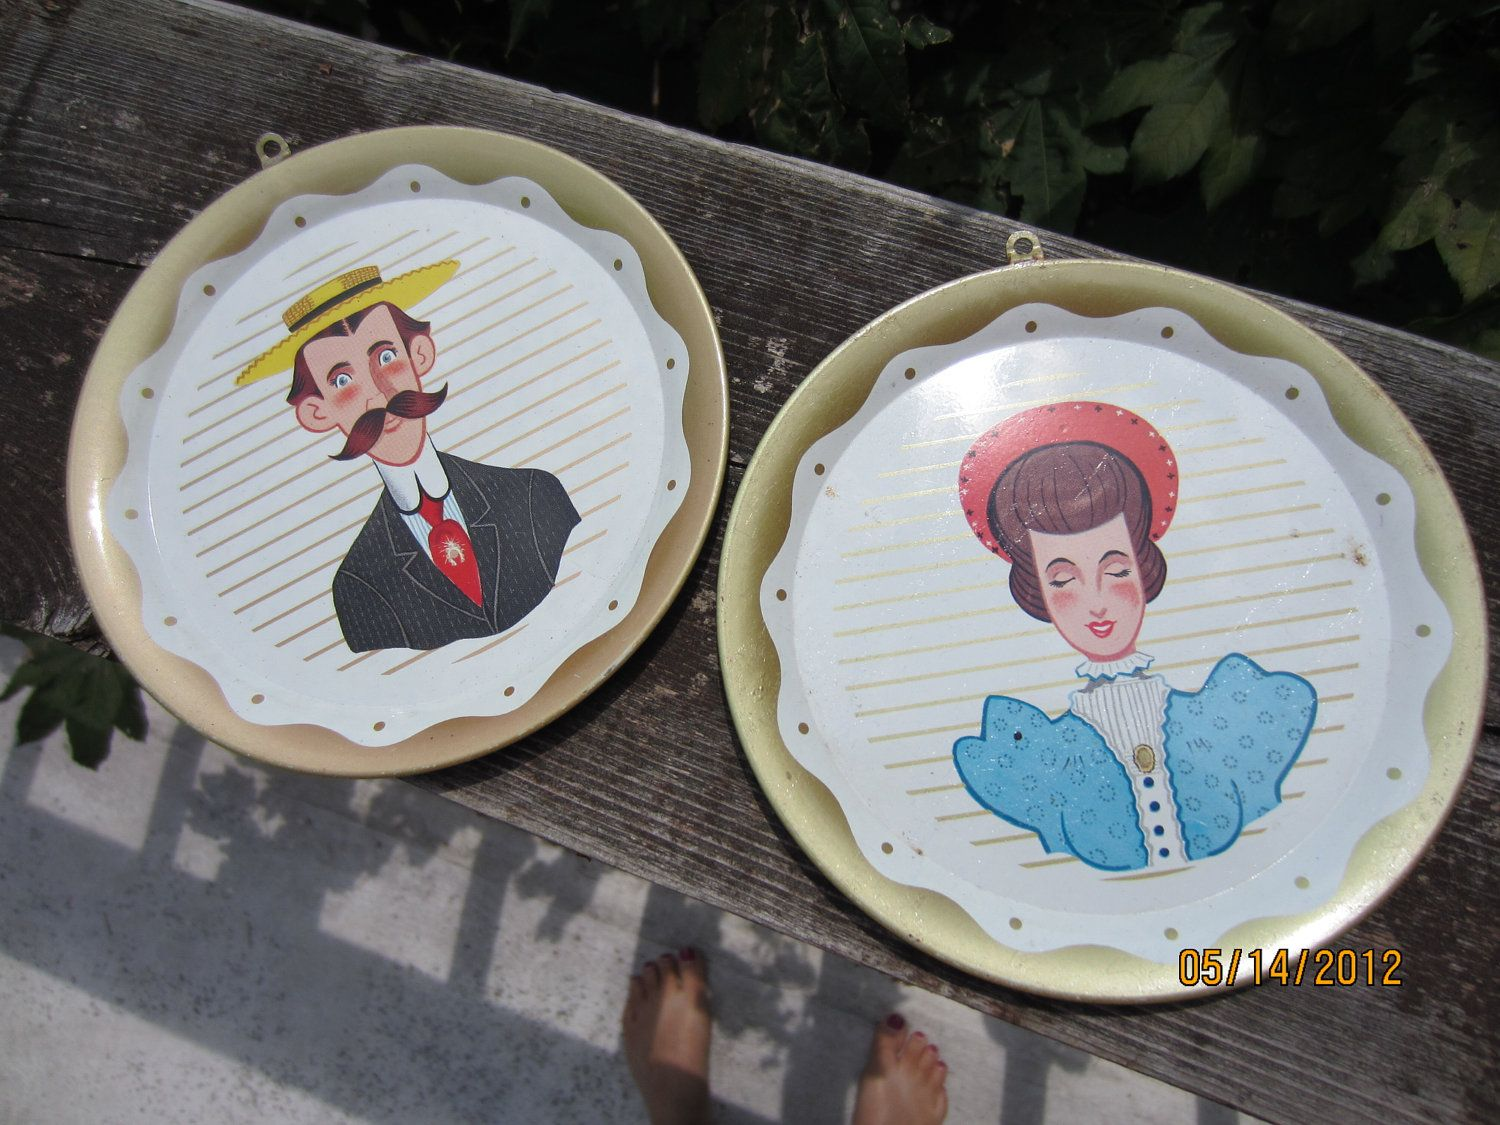 Vintage Victorian Man u0026 Woman Small Decorative Plates (made of tin) - very cute & Vintage Victorian Man u0026 Woman Small Decorative Plates (made of tin ...